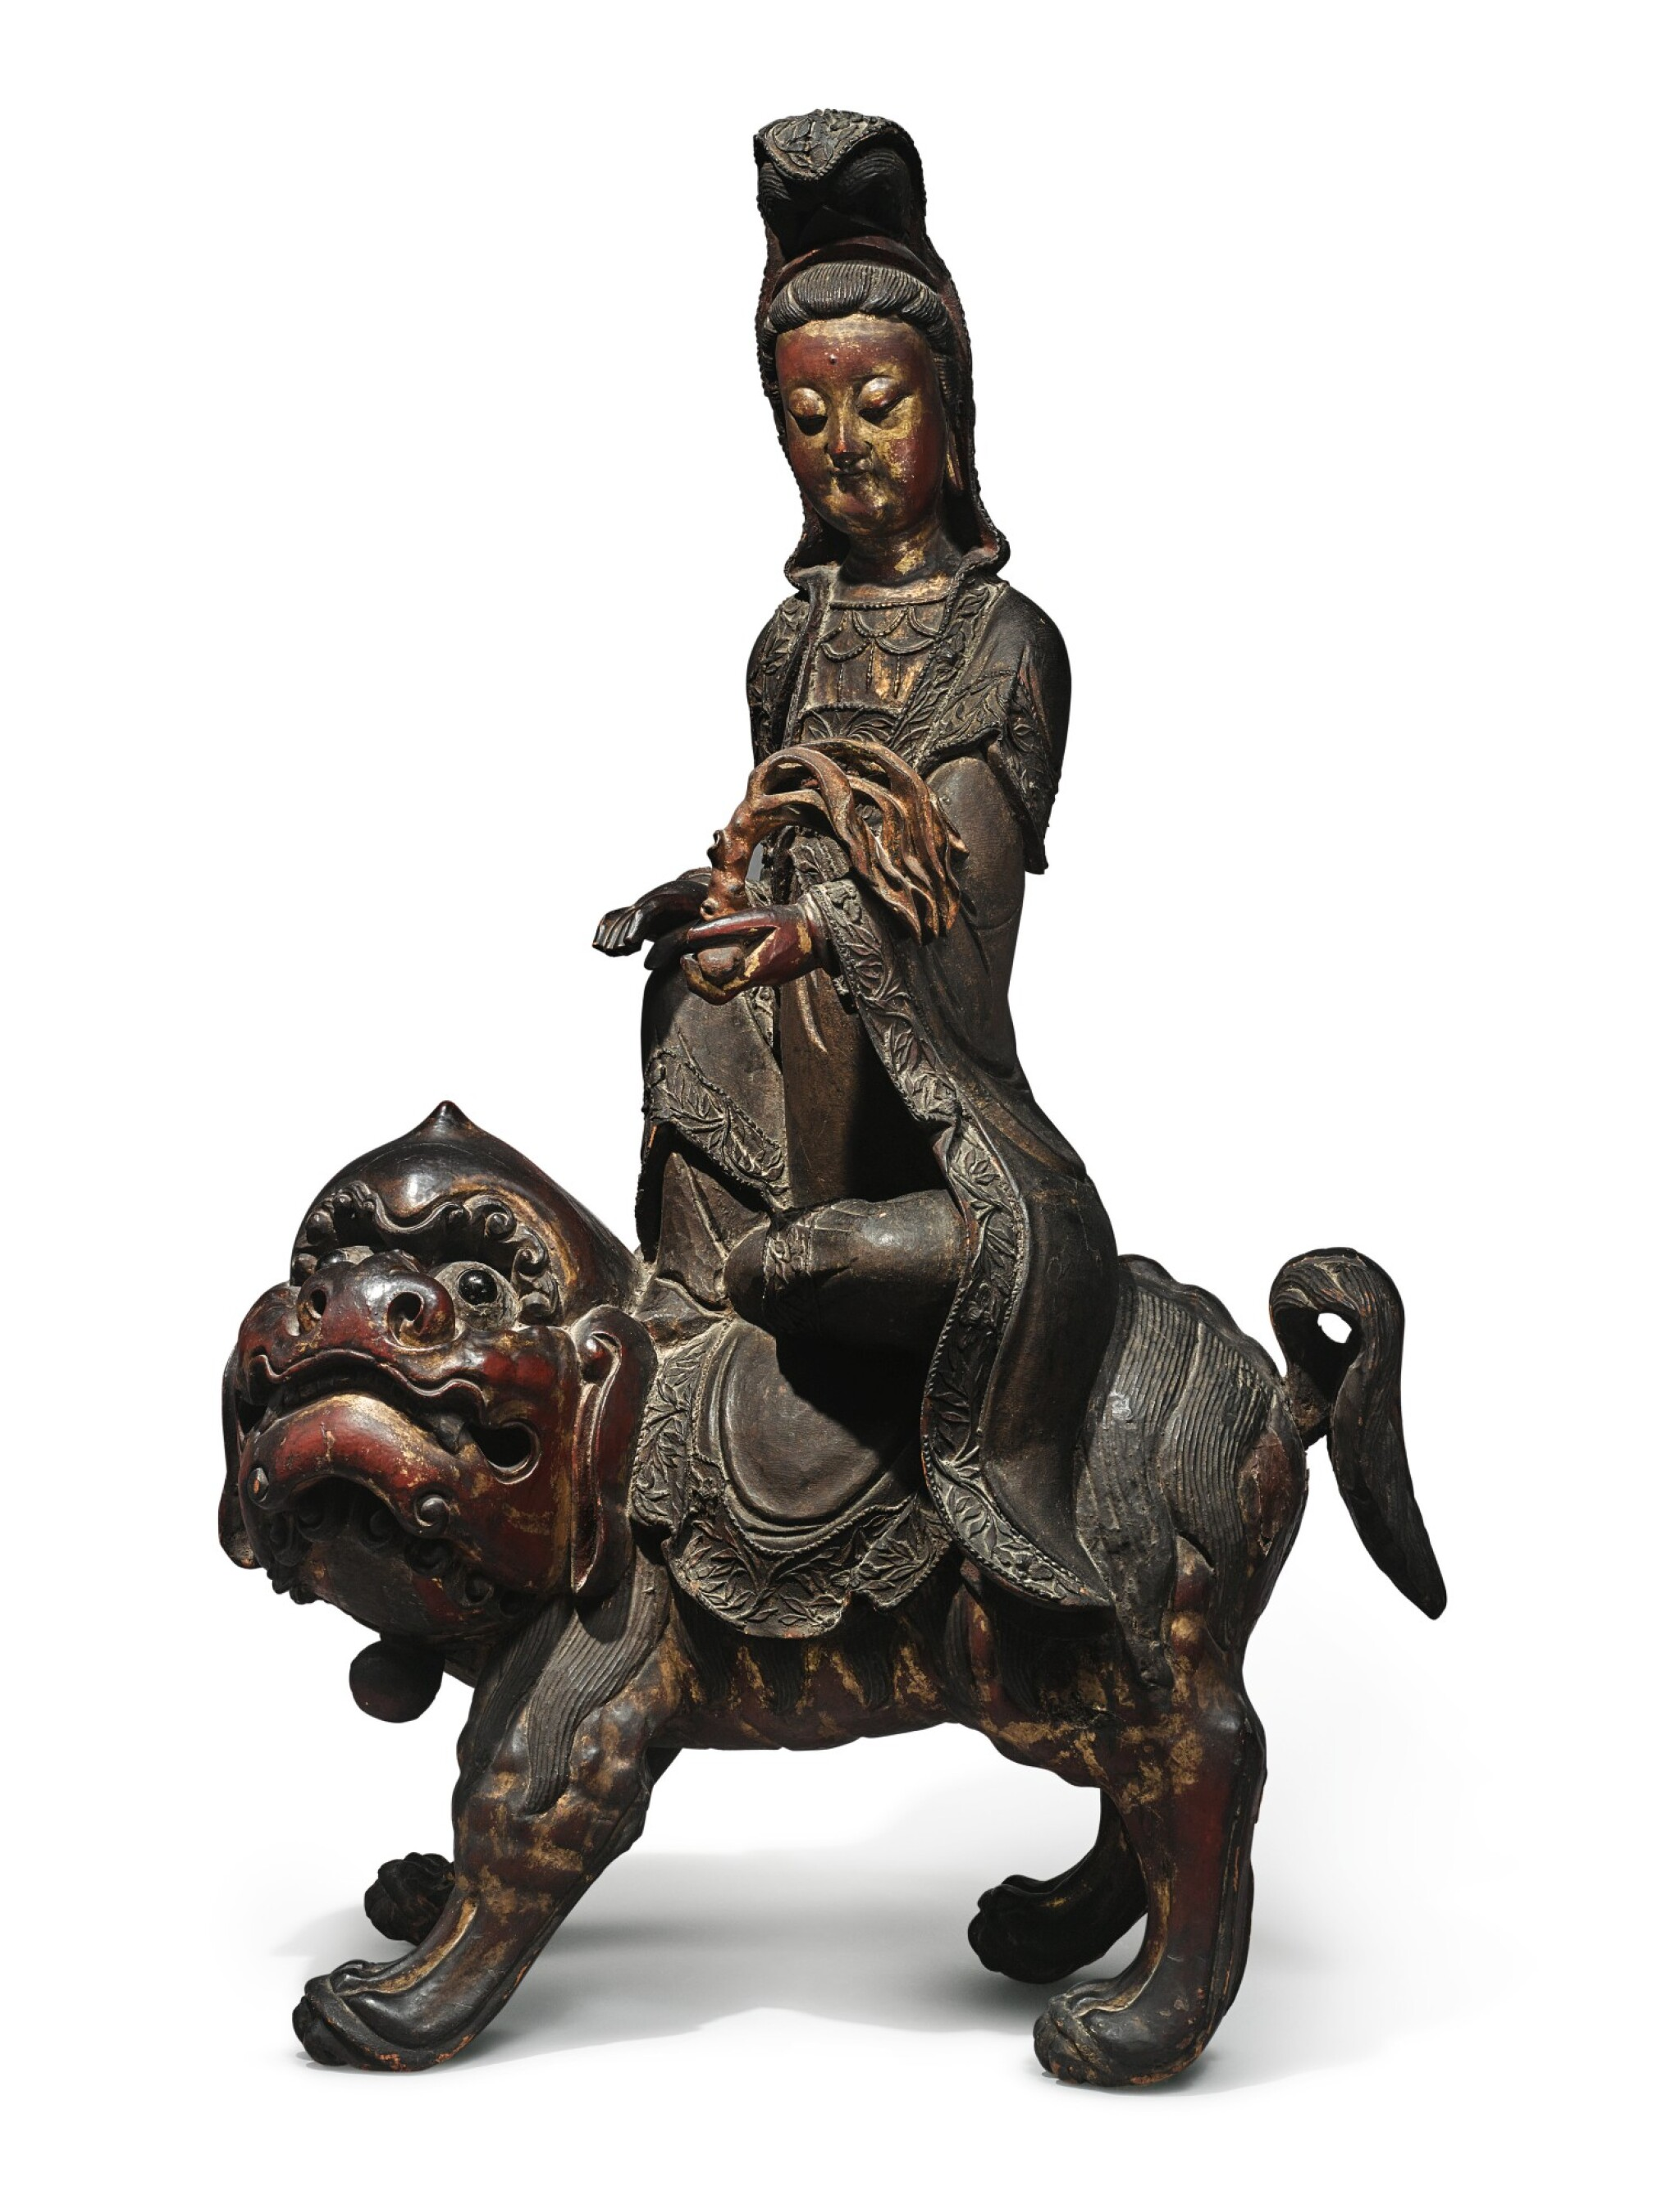 View 1 of Lot 1108. A LARGE LACQUERED AND GILT-WOOD FIGURE OF SIMHANADA AVOLOKITESHVARA,  LATE MING / EARLY QING DYNASTY.